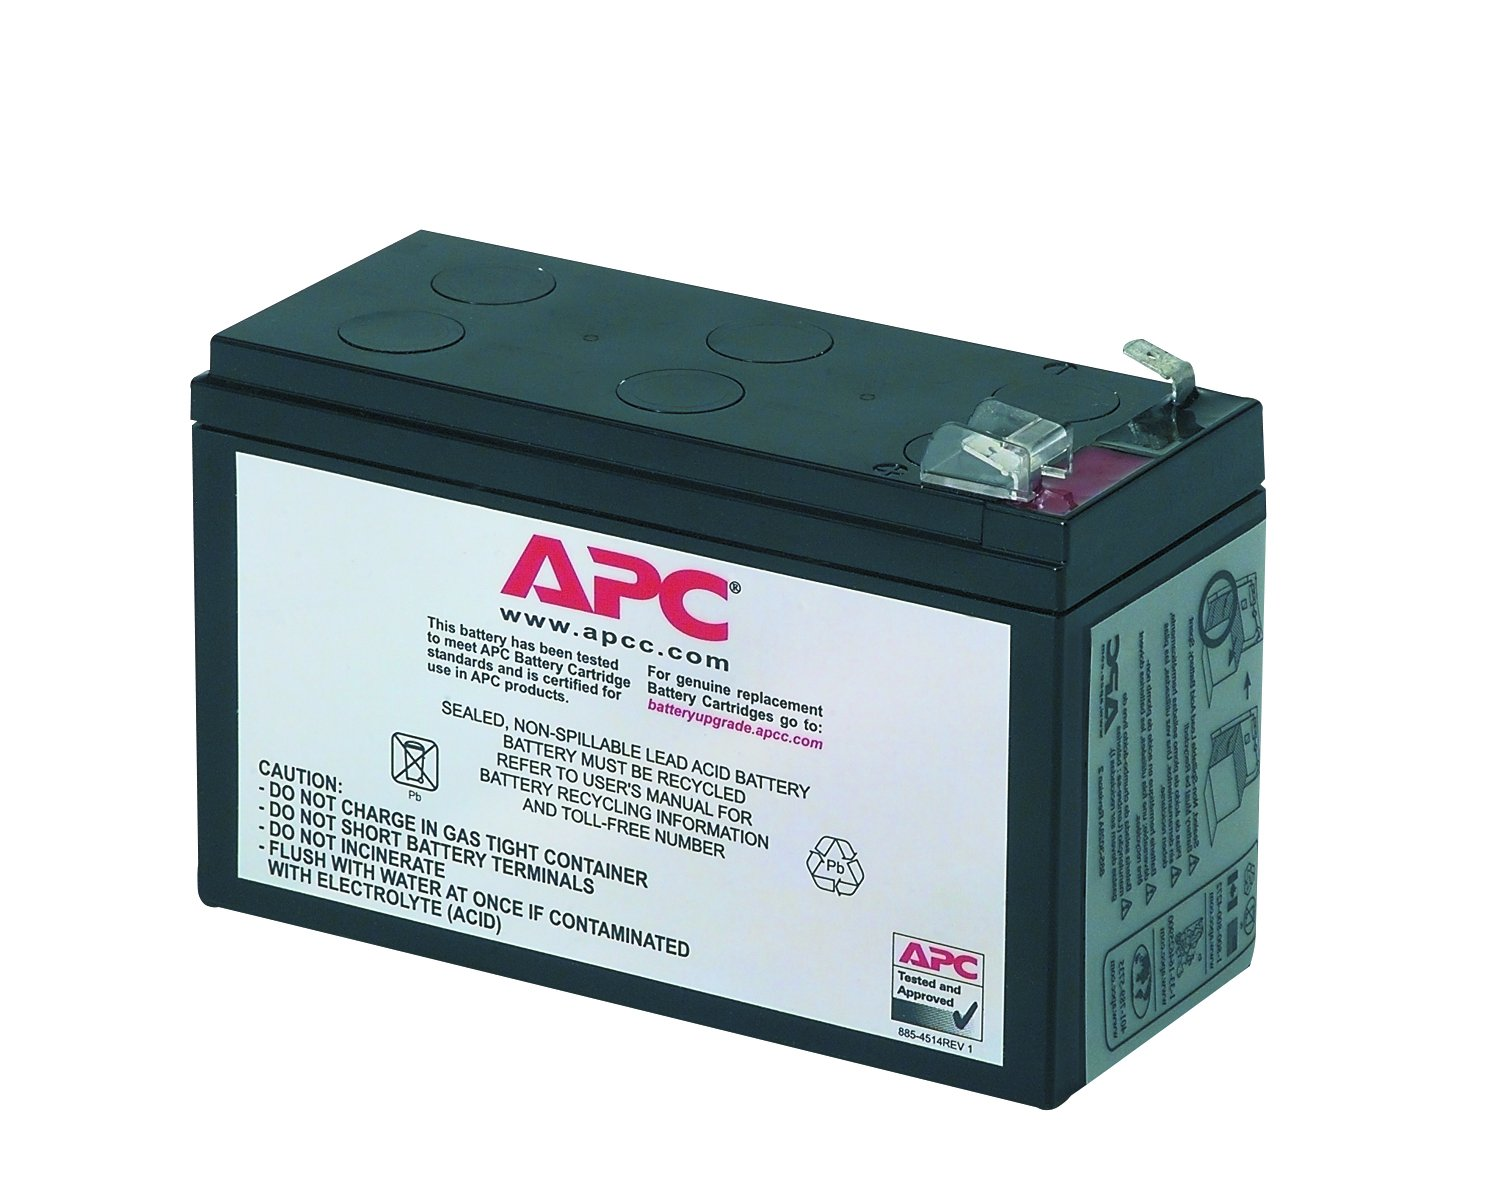 APC UPS Battery Replacement for APC UPS Models BE650G1, BE750G, BR700G, BE850M2, BX850M, BE650G, BN600, BN700MC, BN900M, and select others (RBC17)